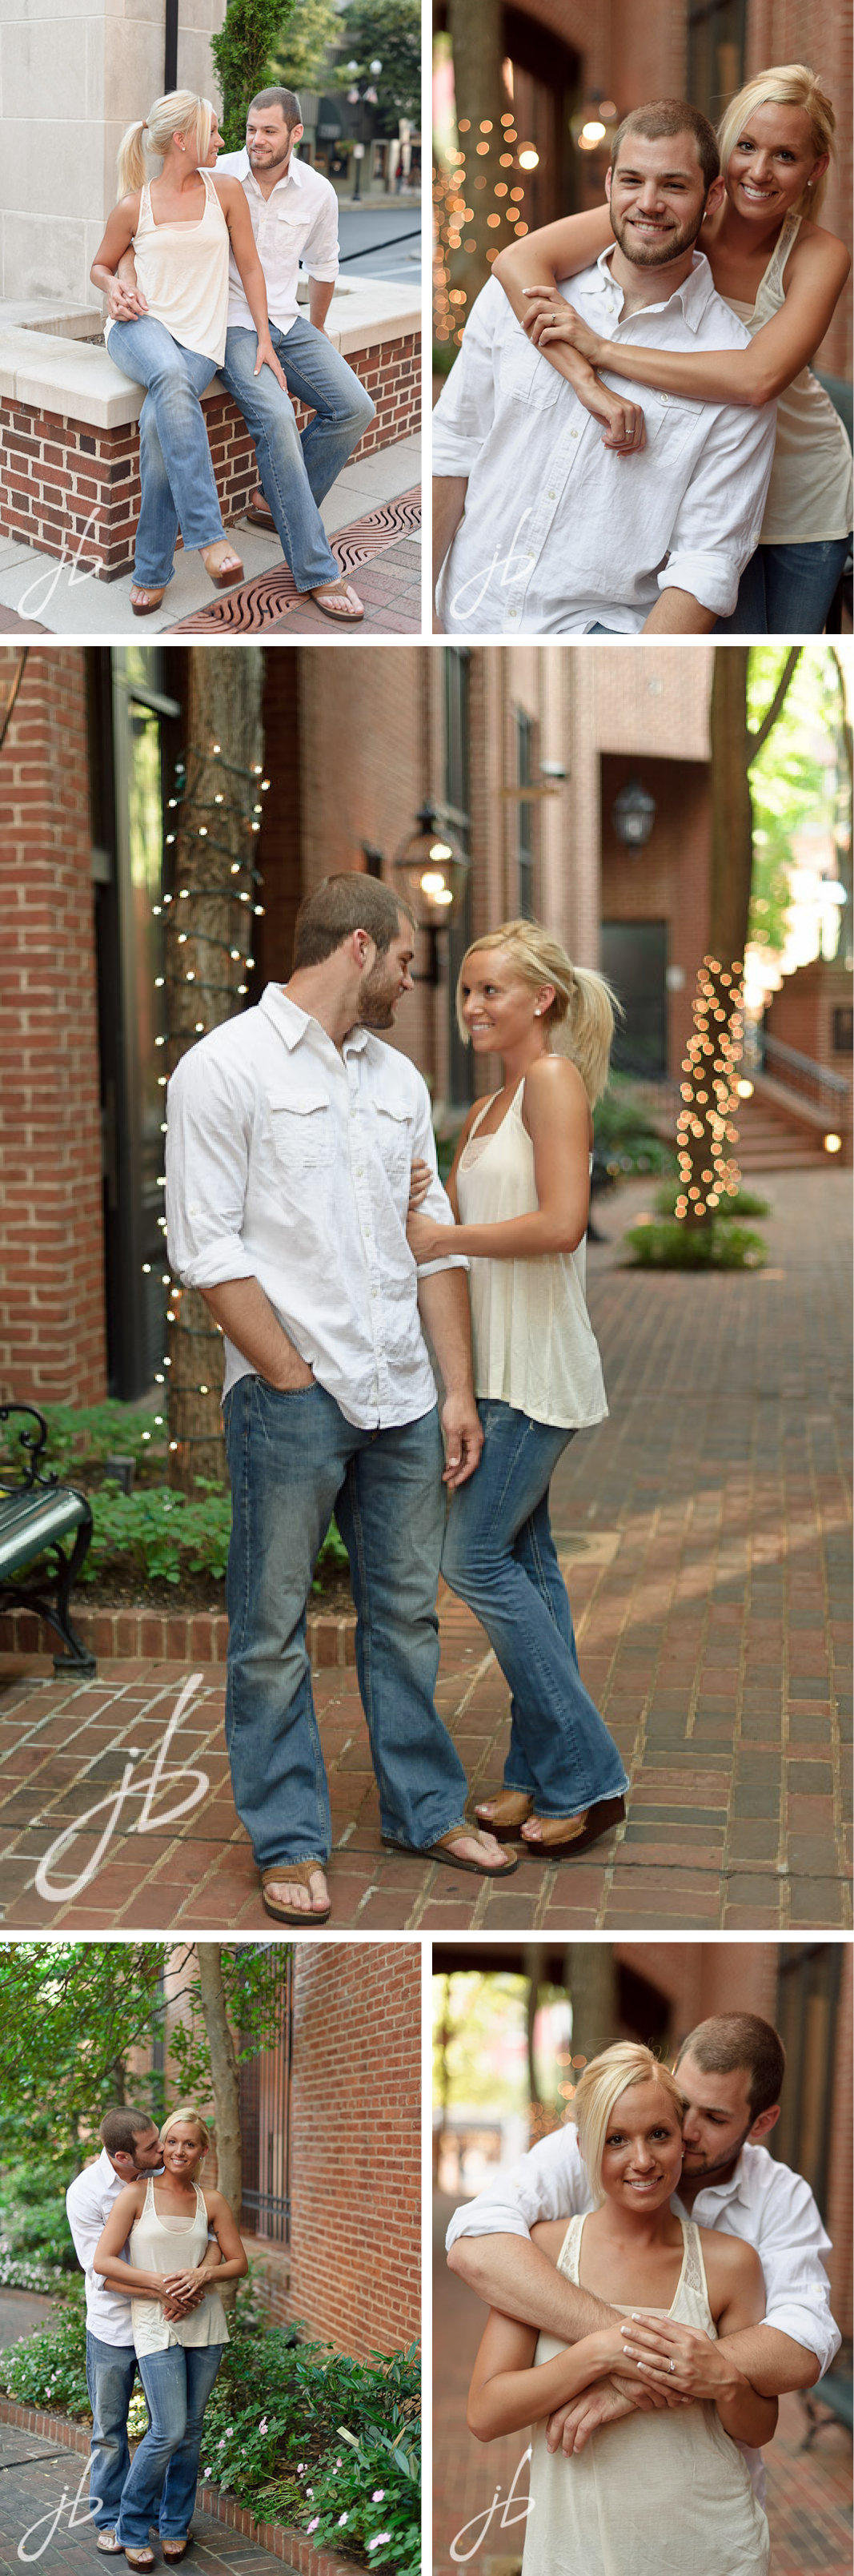 Gettysburg Engagement Photography by Jeremy Bischoff Photography